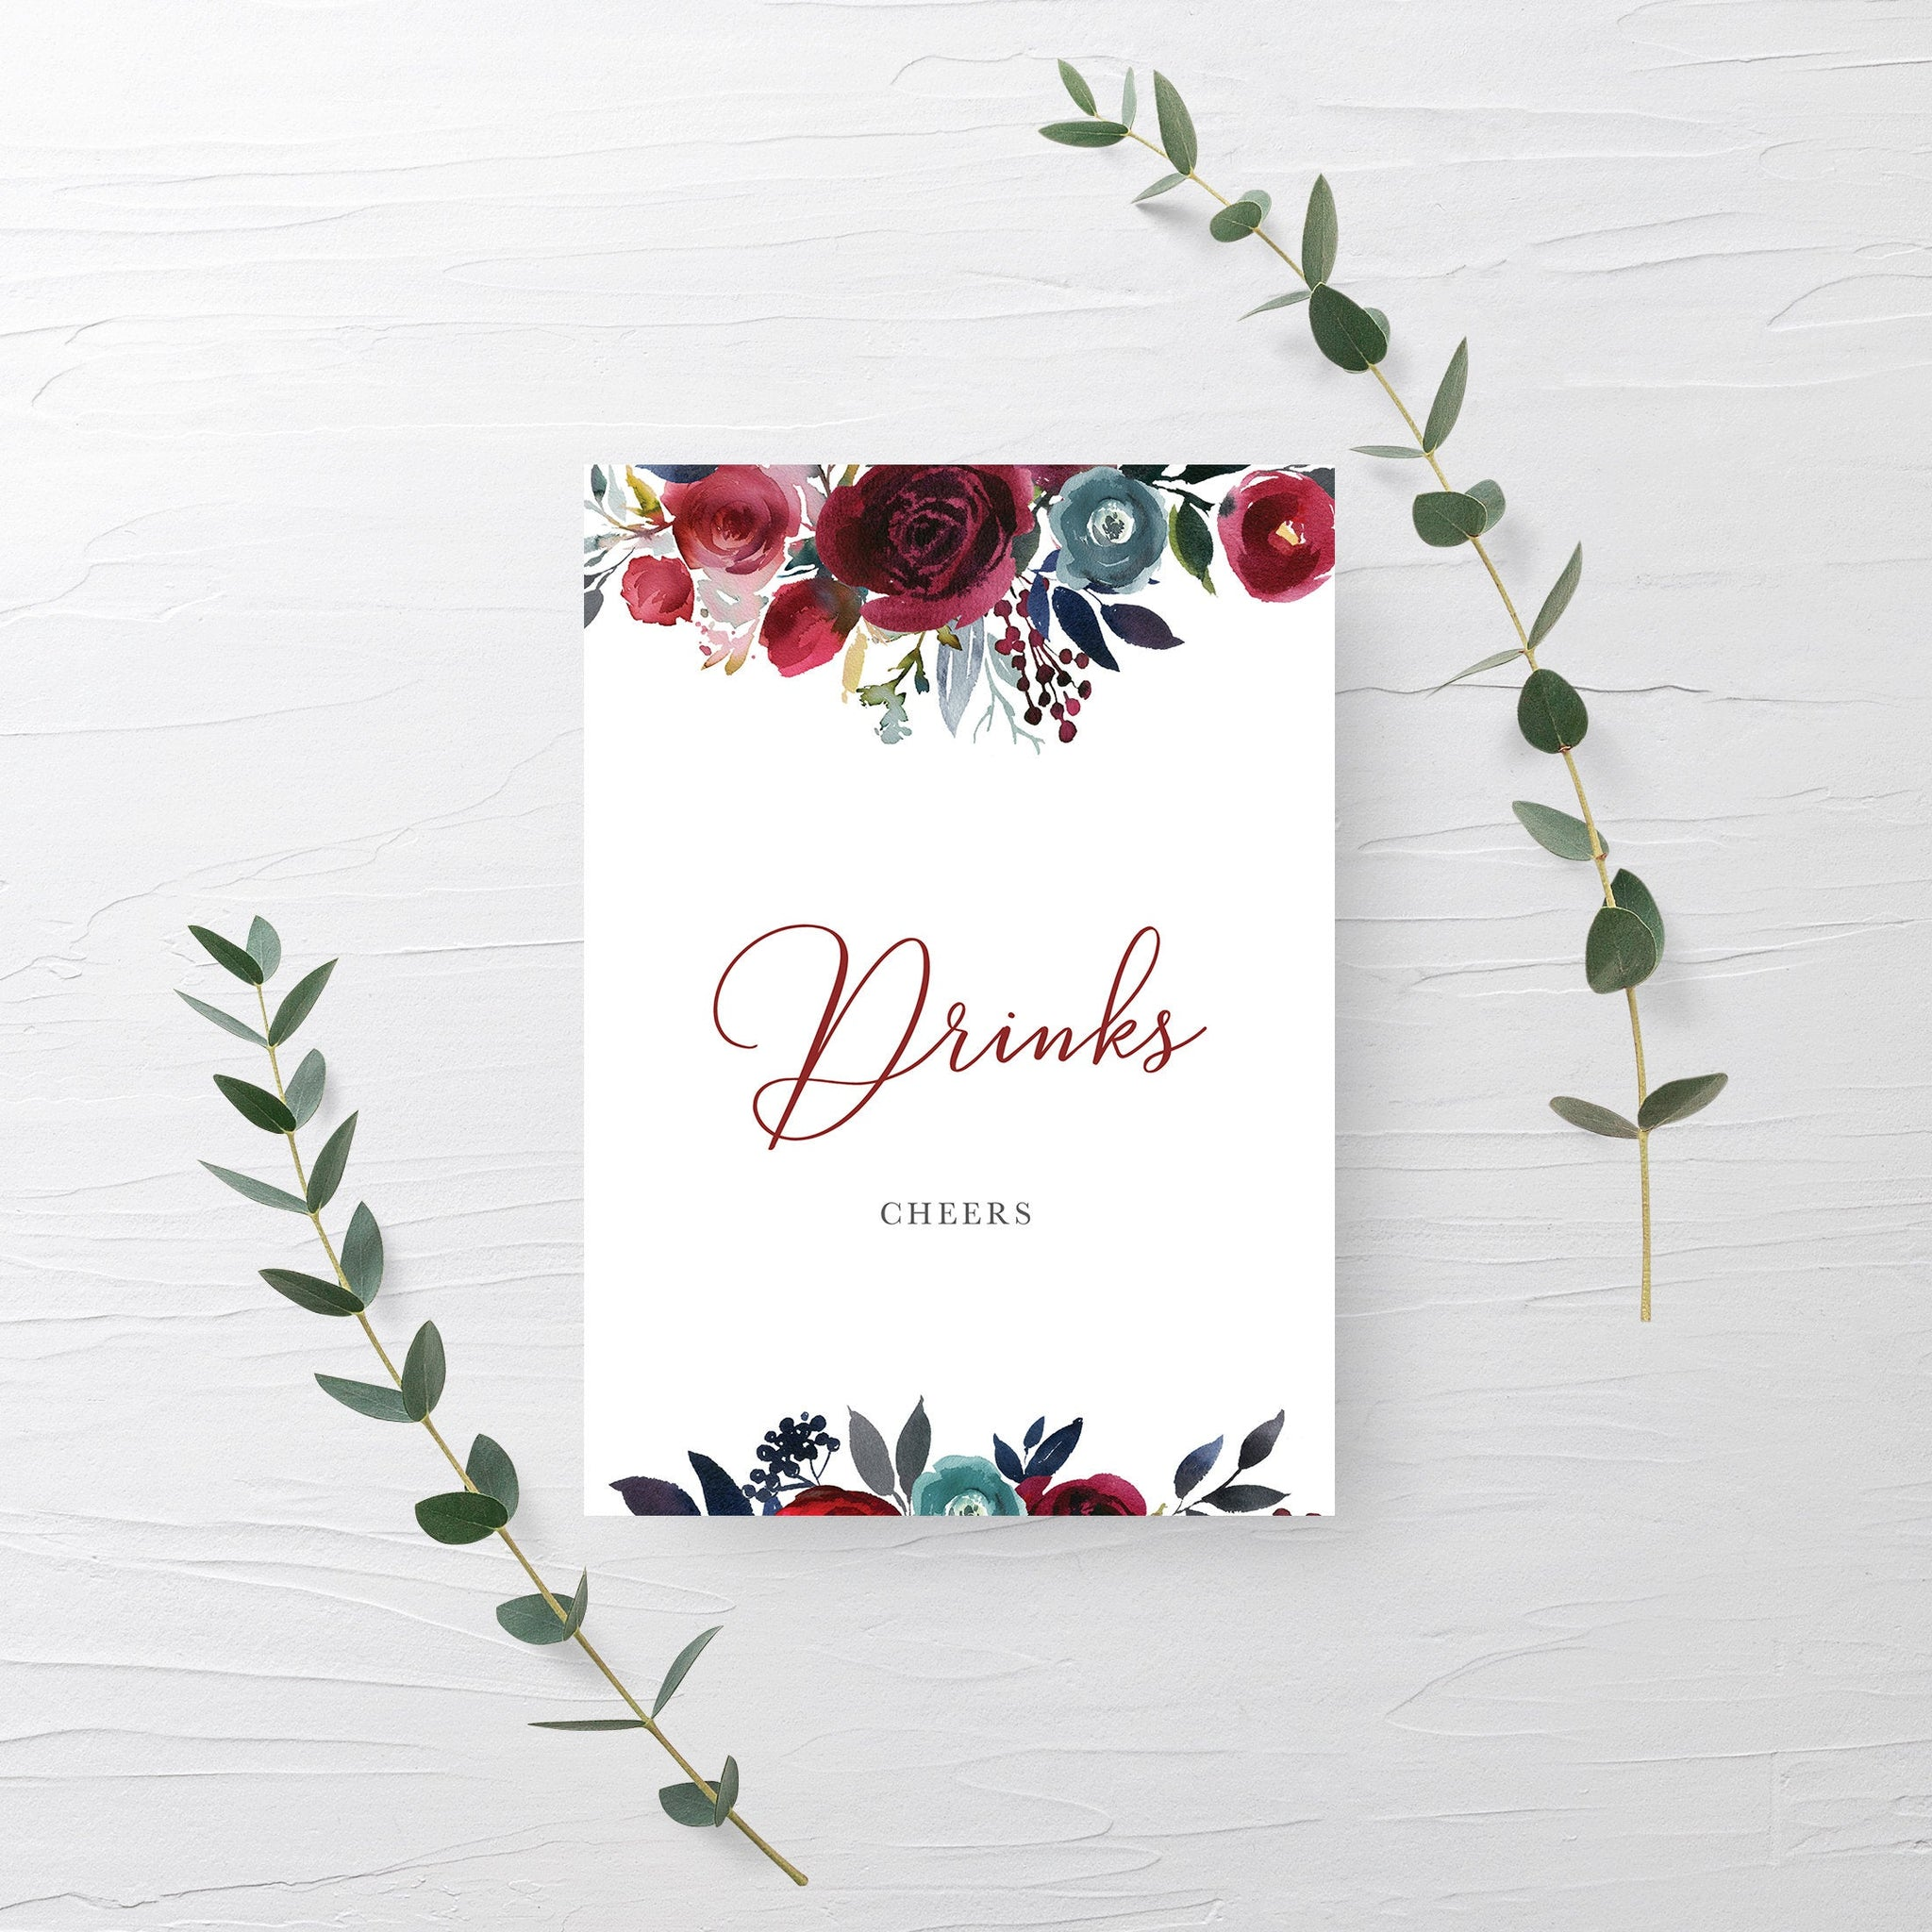 Burgundy Wedding Decorations, Drinks Sign Printable, Burgundy and Navy Wedding, INSTANT DOWNLOAD - BB100 - @PlumPolkaDot